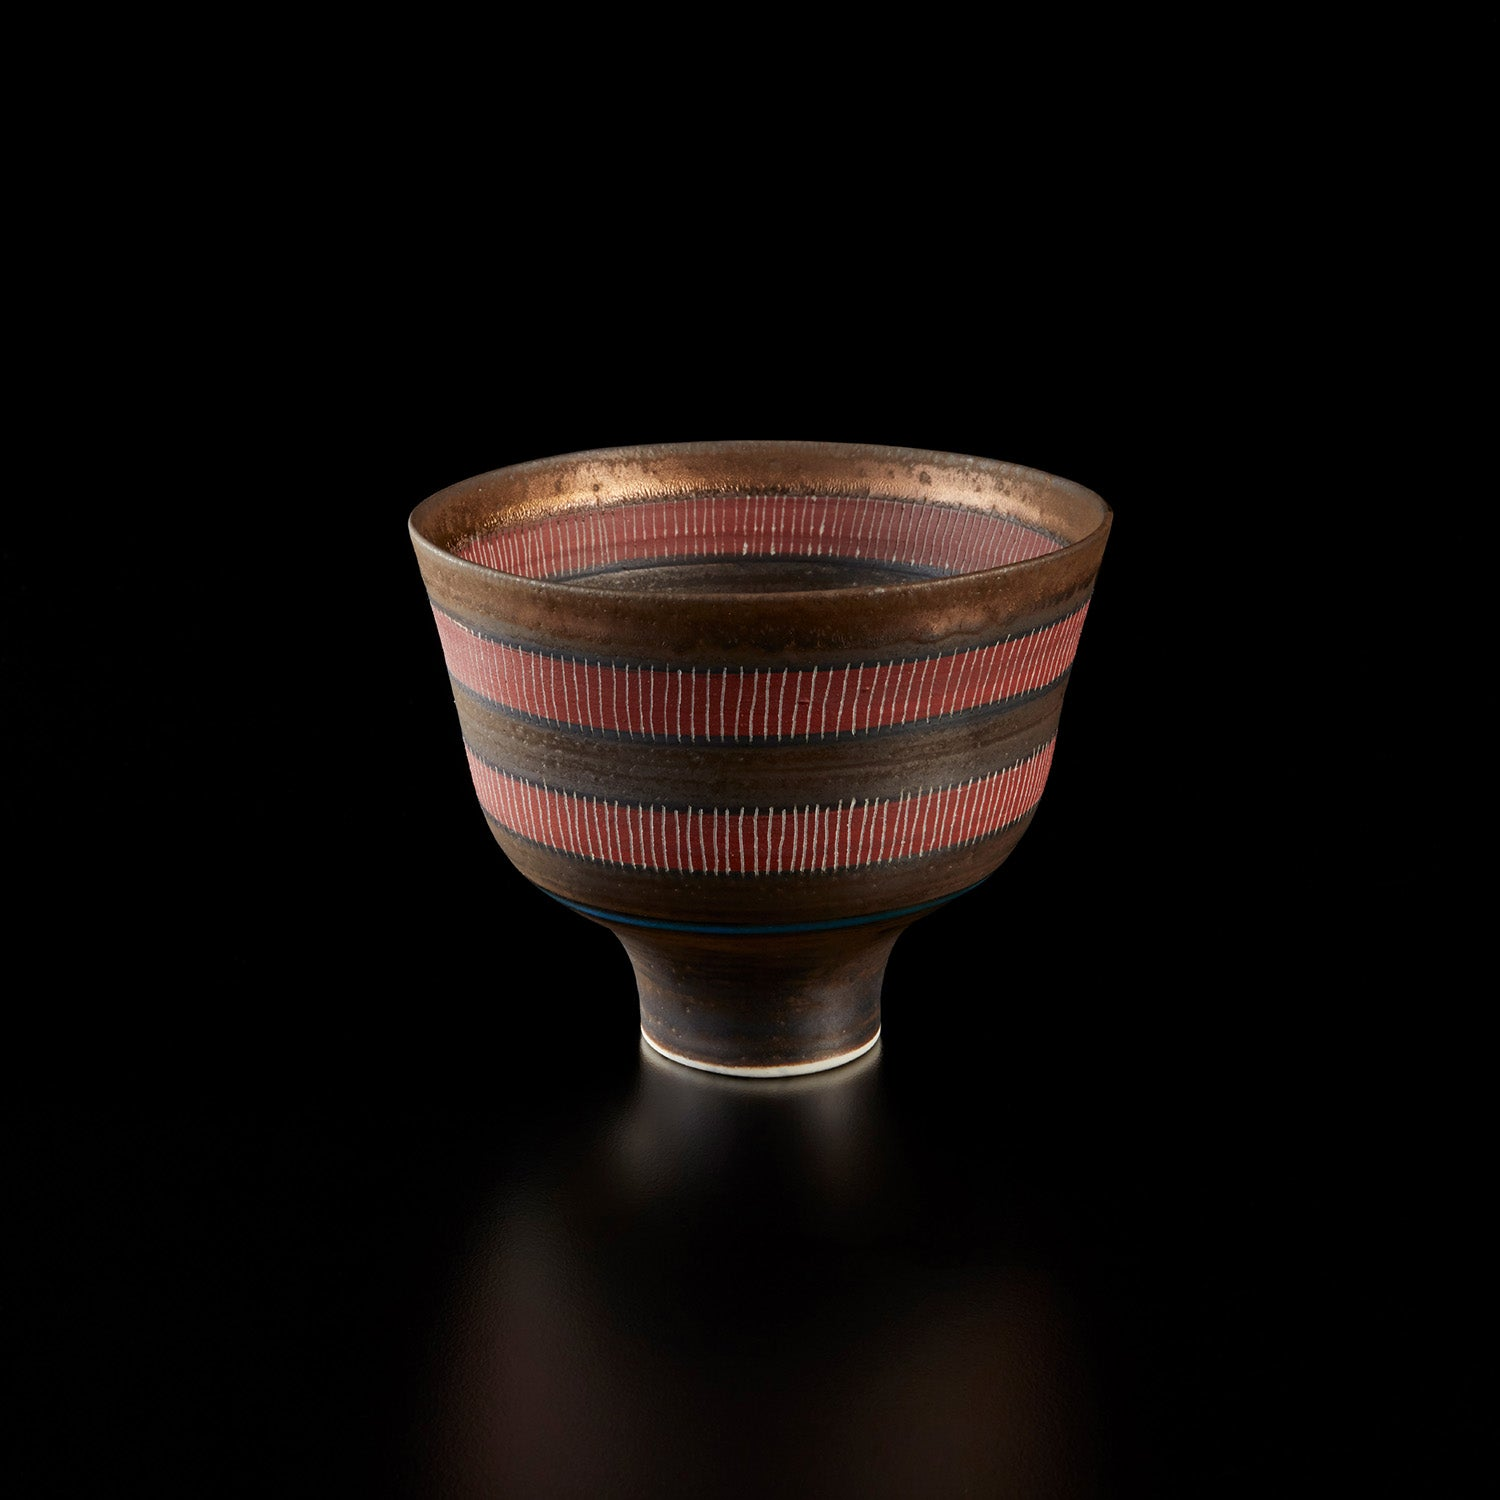 Footed Bowl (circa 1978) by Lucie Rie sold at Phillips New York in July for $225,000. Photo © Phillips